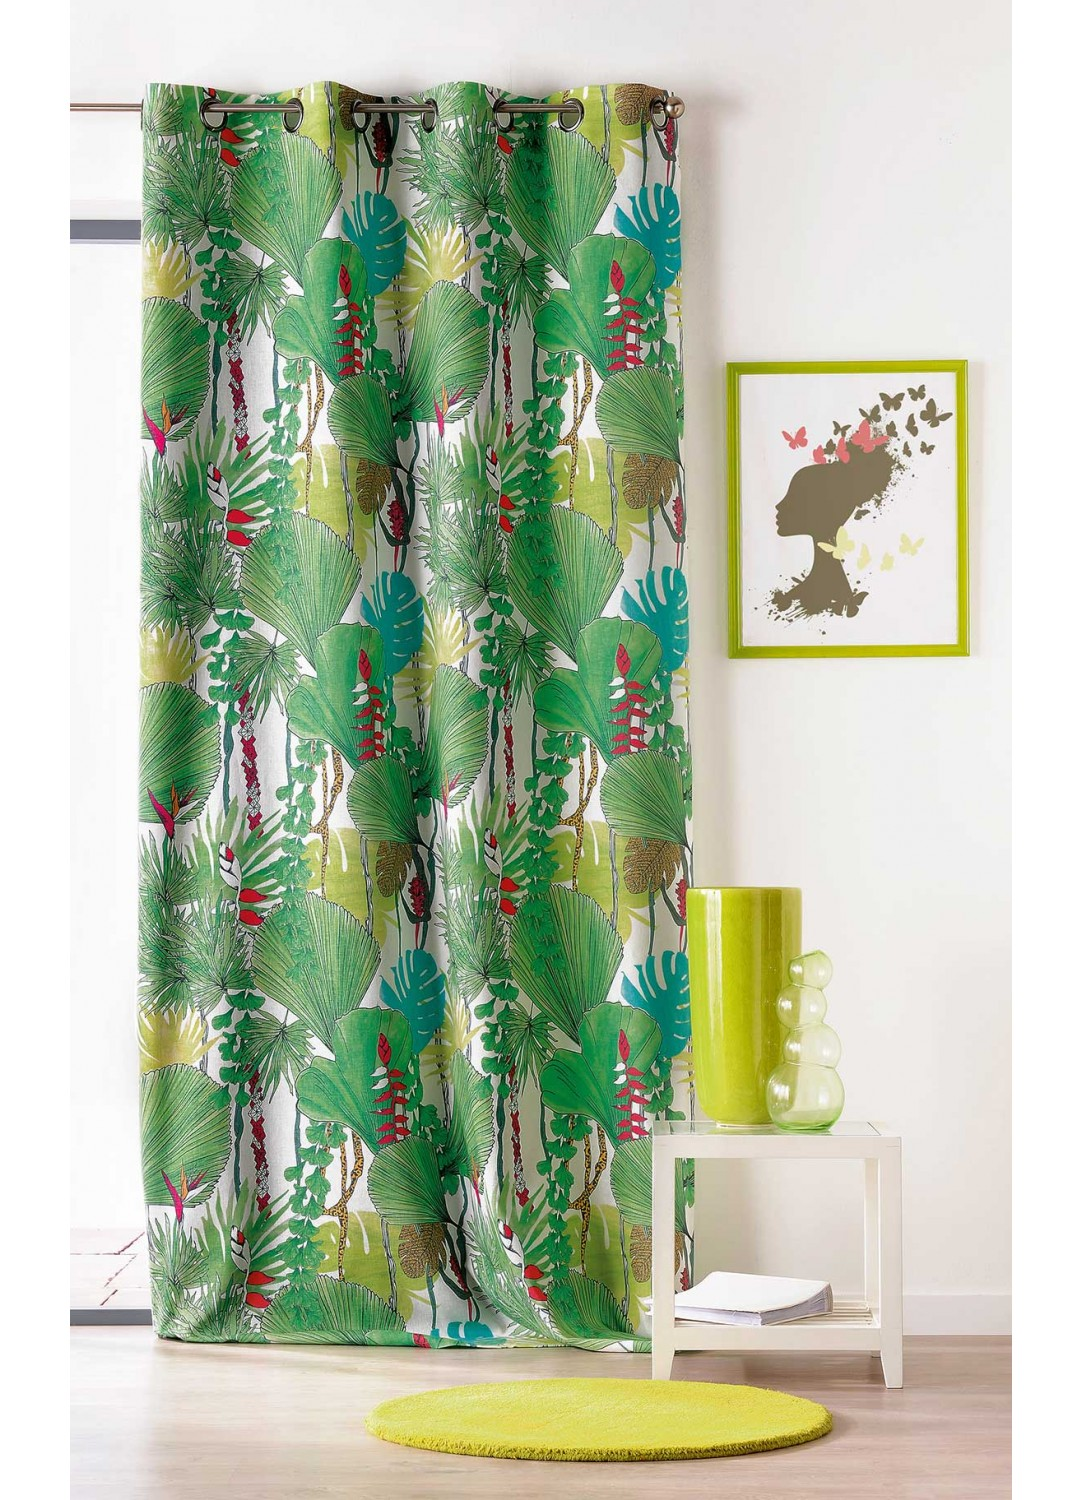 Rideau A Motifs Jungle Tisse En France Vert Bleu Homemaison